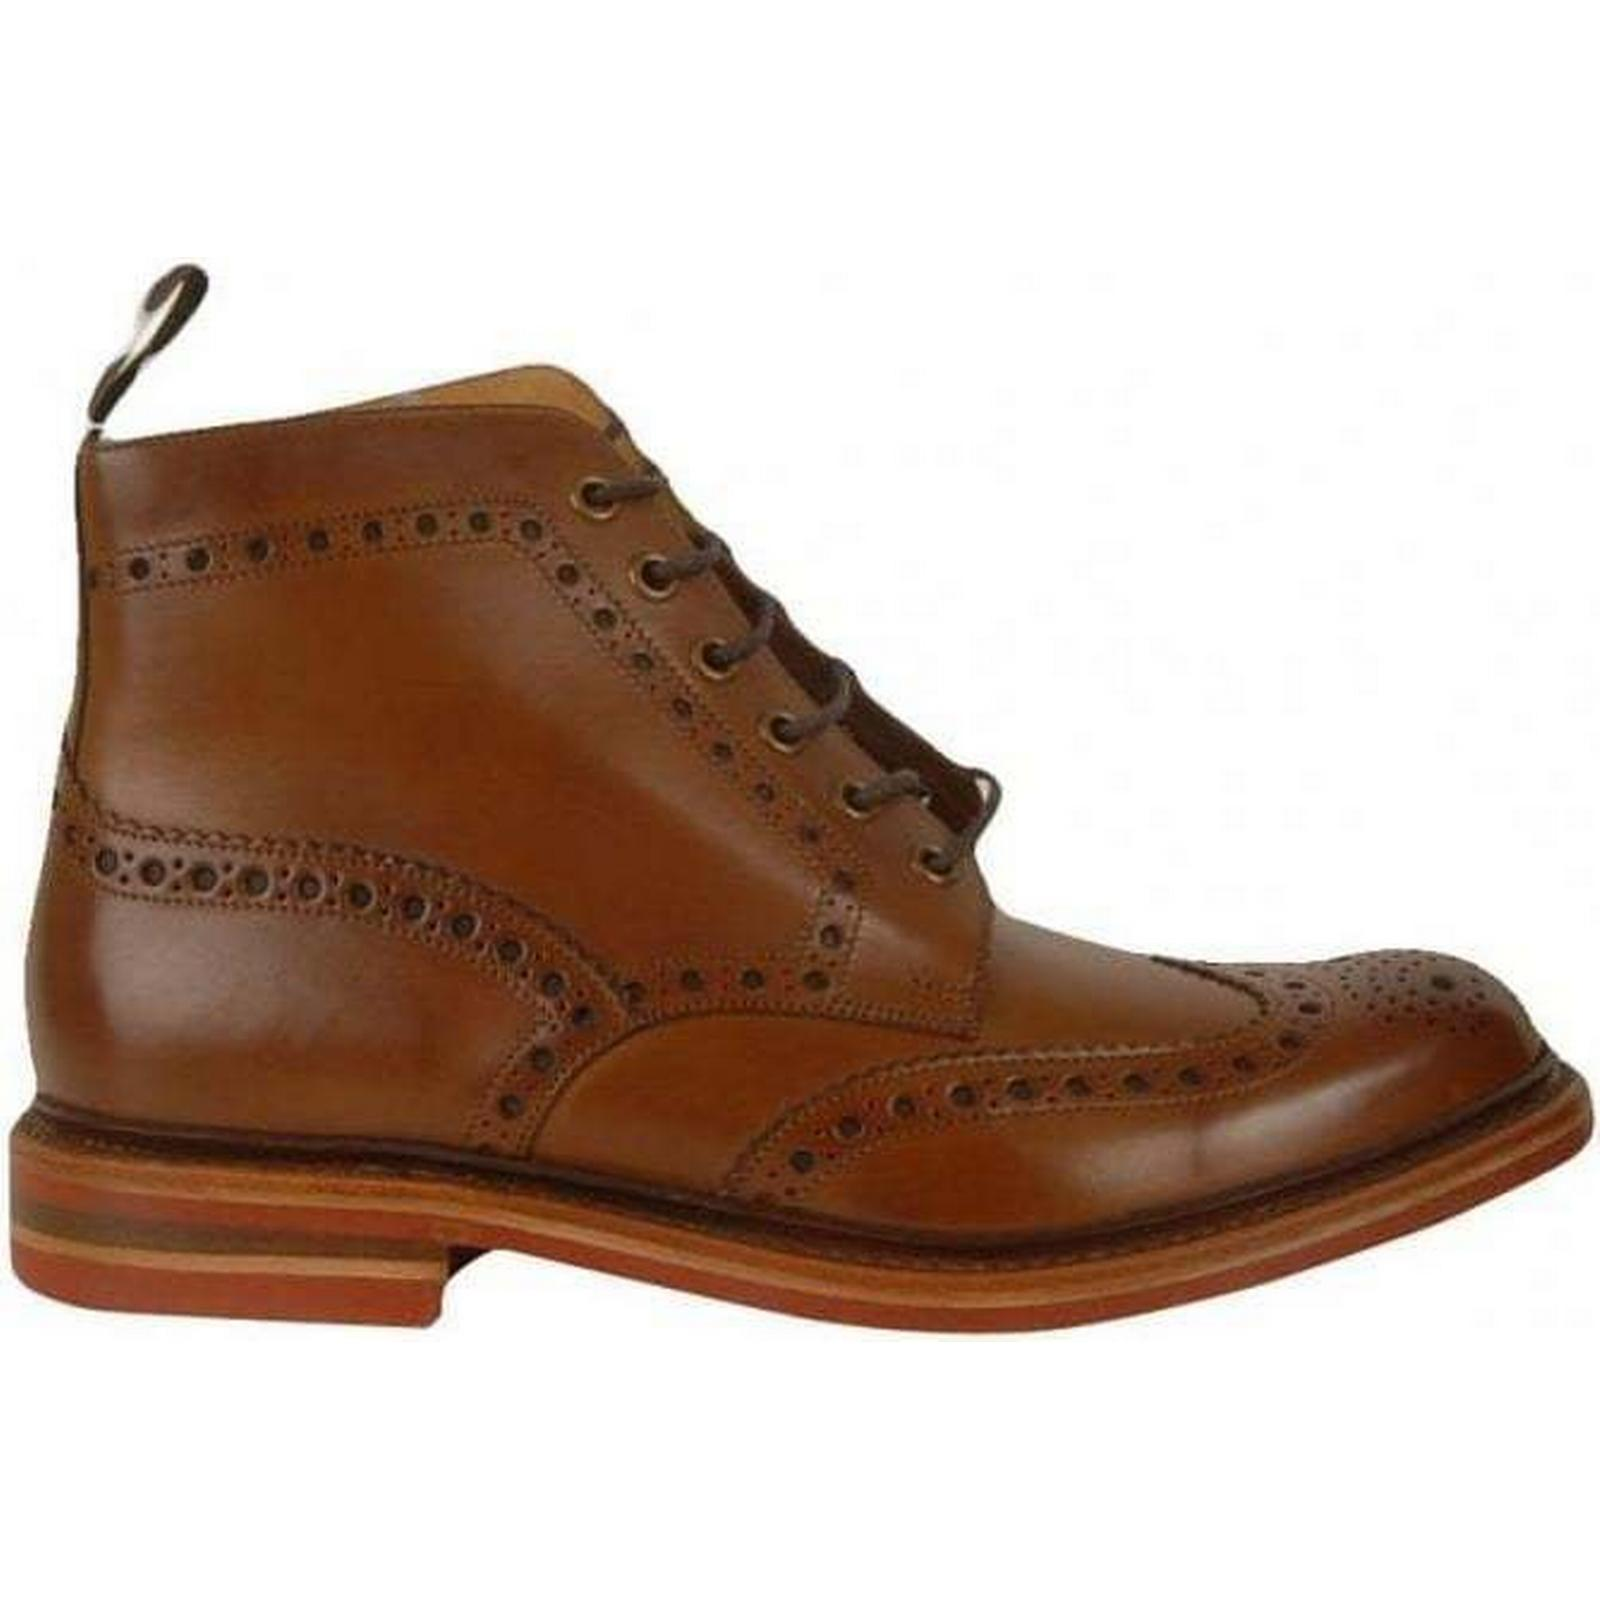 Loake Burnished Size: Brogues Boots Colour: BROWN, Size: Burnished 11 54d387